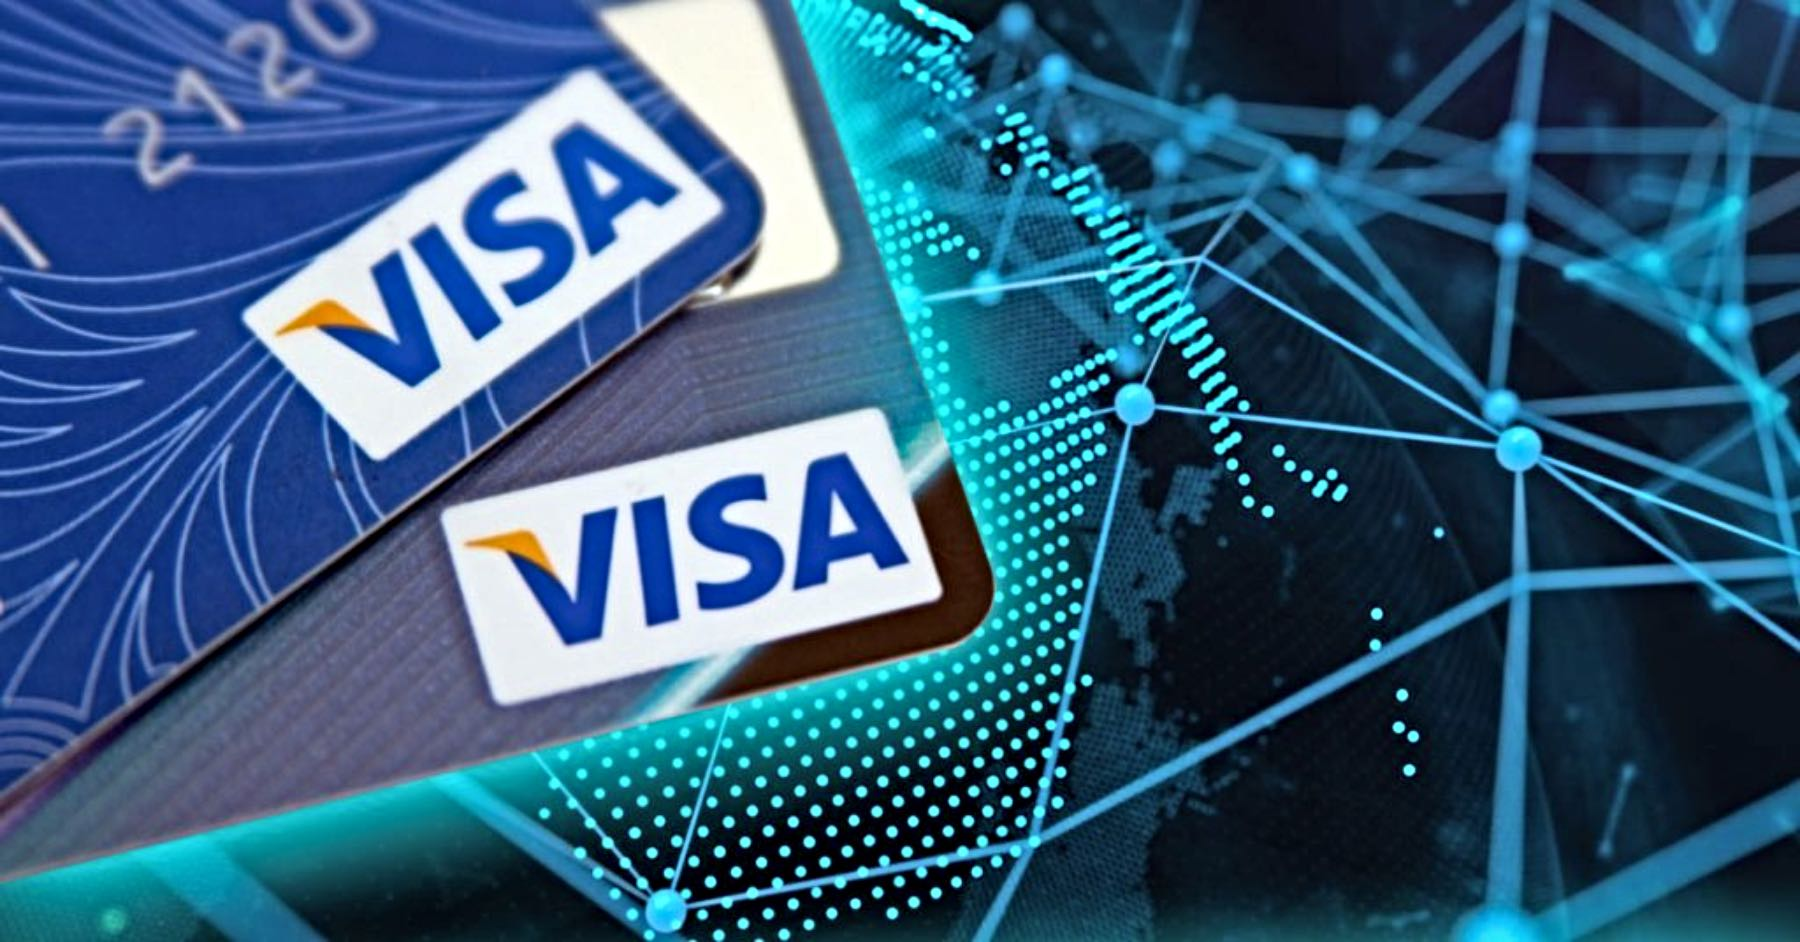 Visa announces a collaboration with big names for its tokenisation service